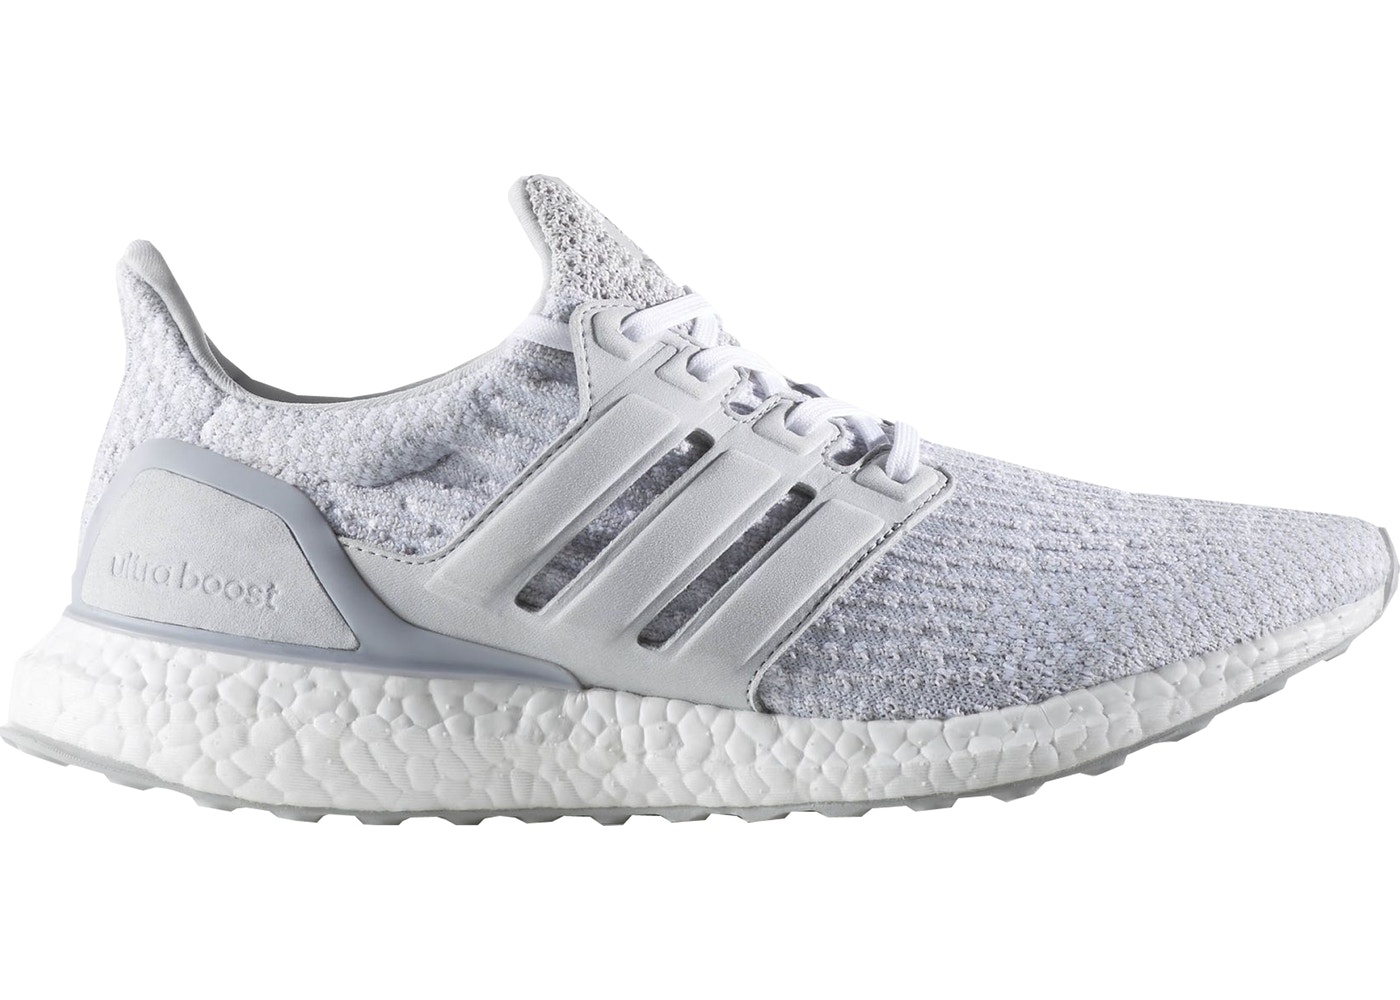 46acec840 adidas Ultra Boost 3.0 Reigning Champ Grey - BW1116